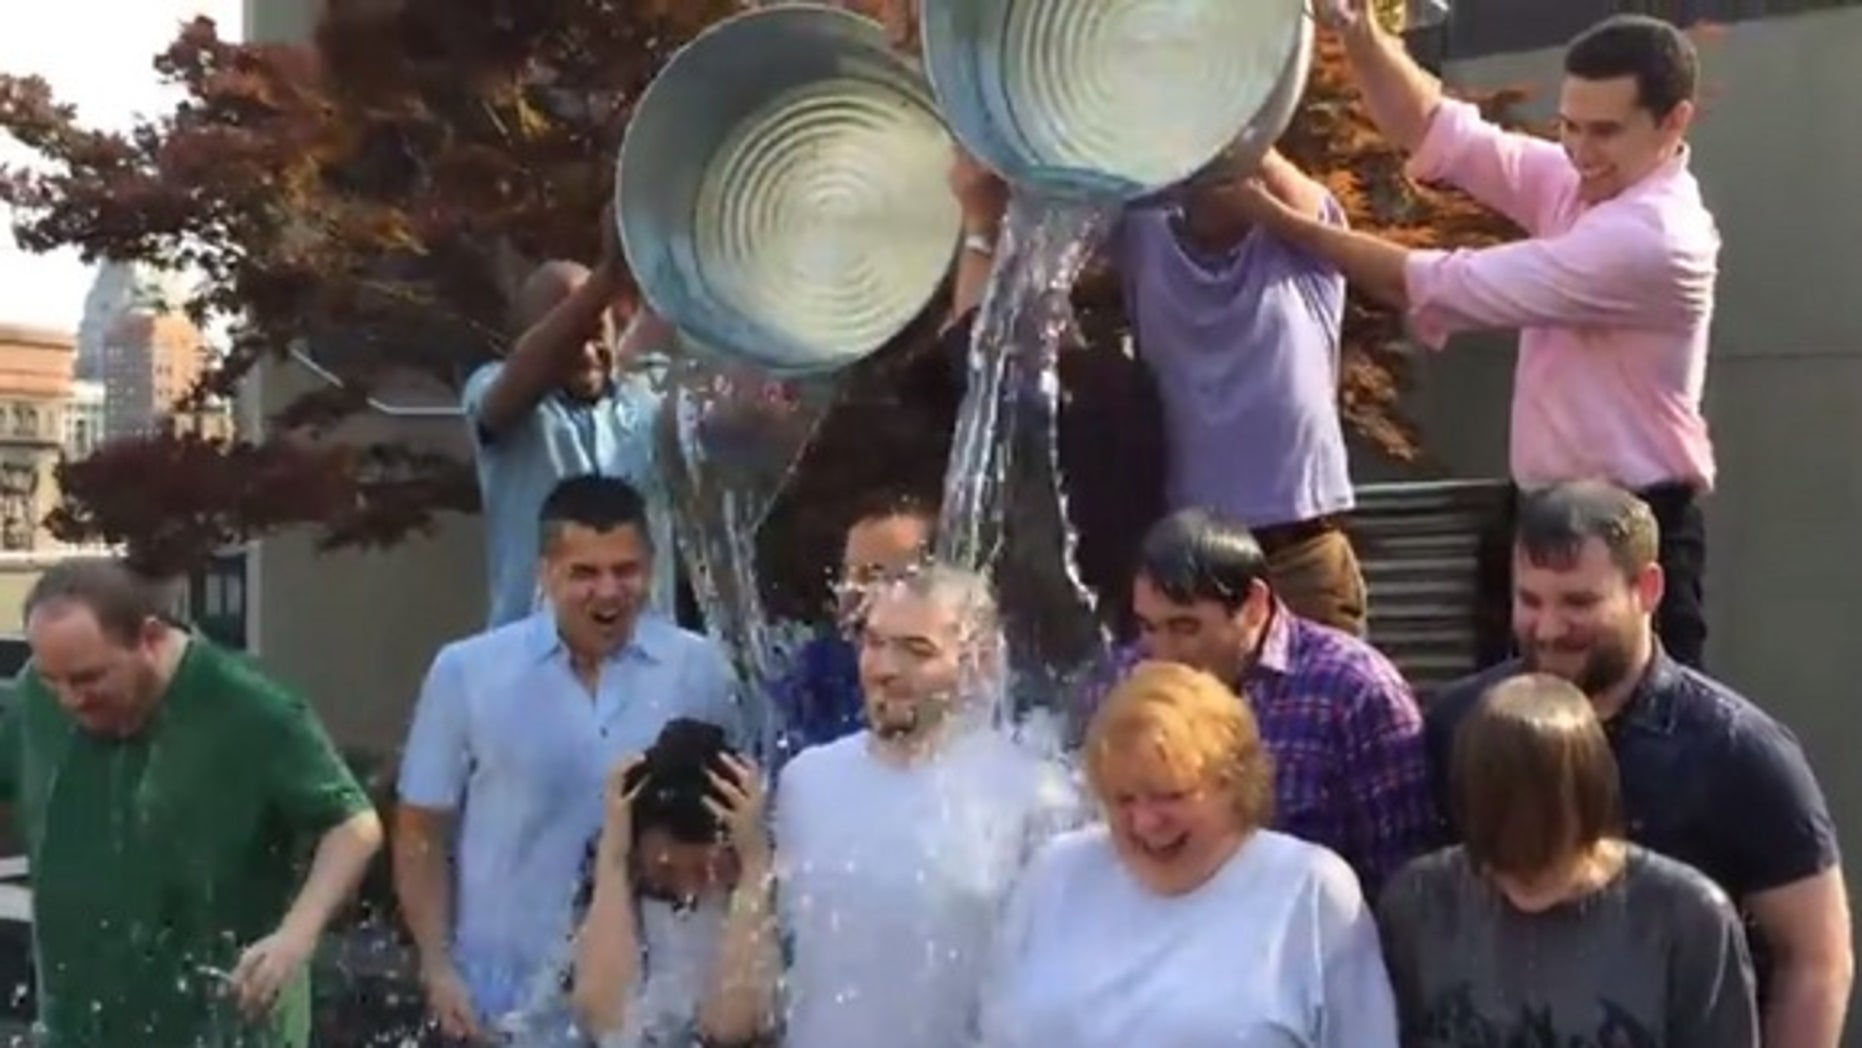 The editorial staff of Tom's Guide, a sister site to Live Science, takes the Ice Bucket Challenge.